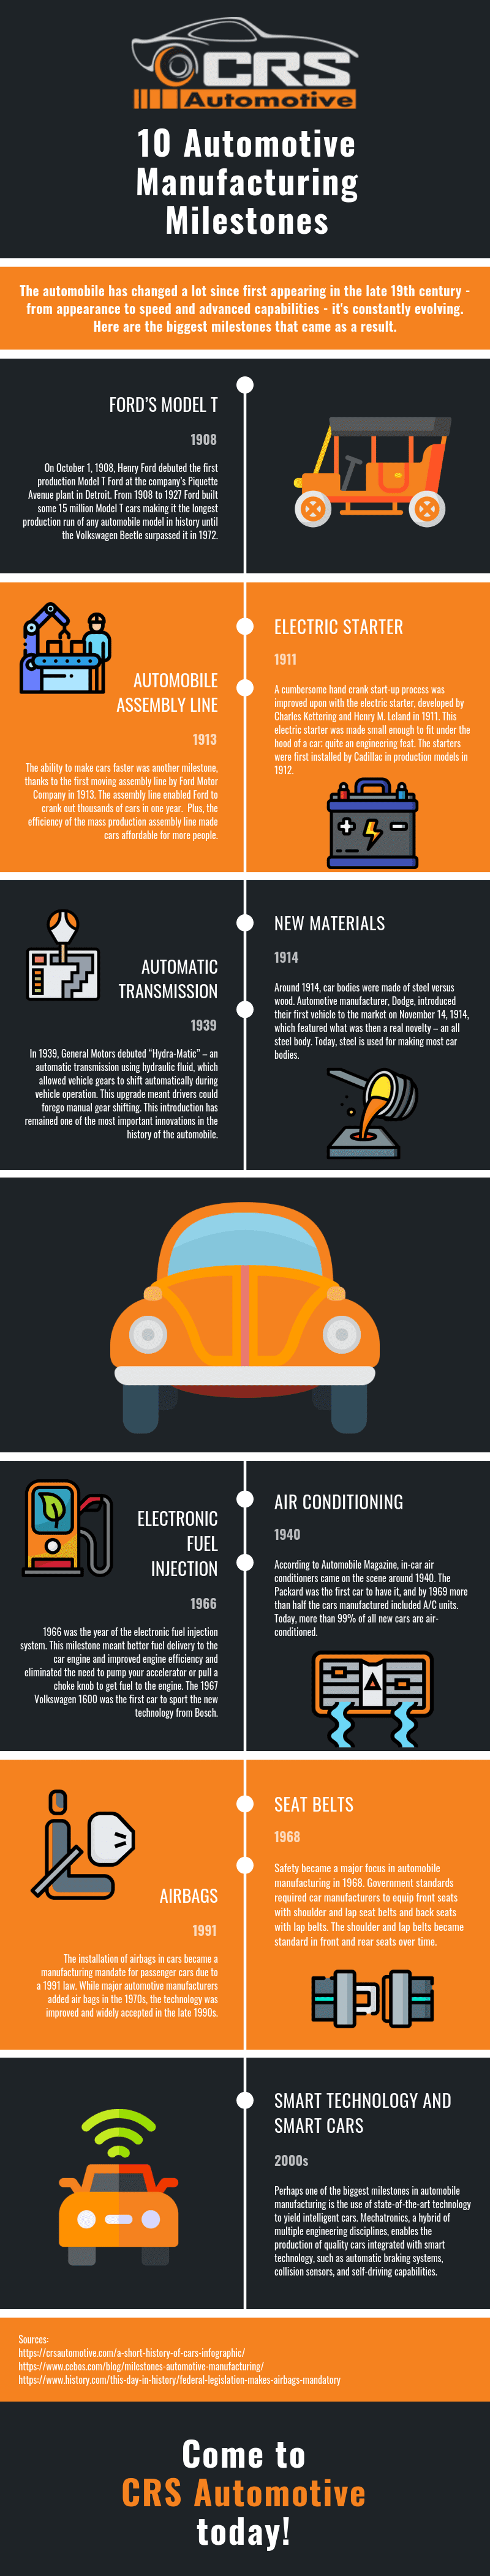 10 Automotive Manufacturing Milestones Infographic